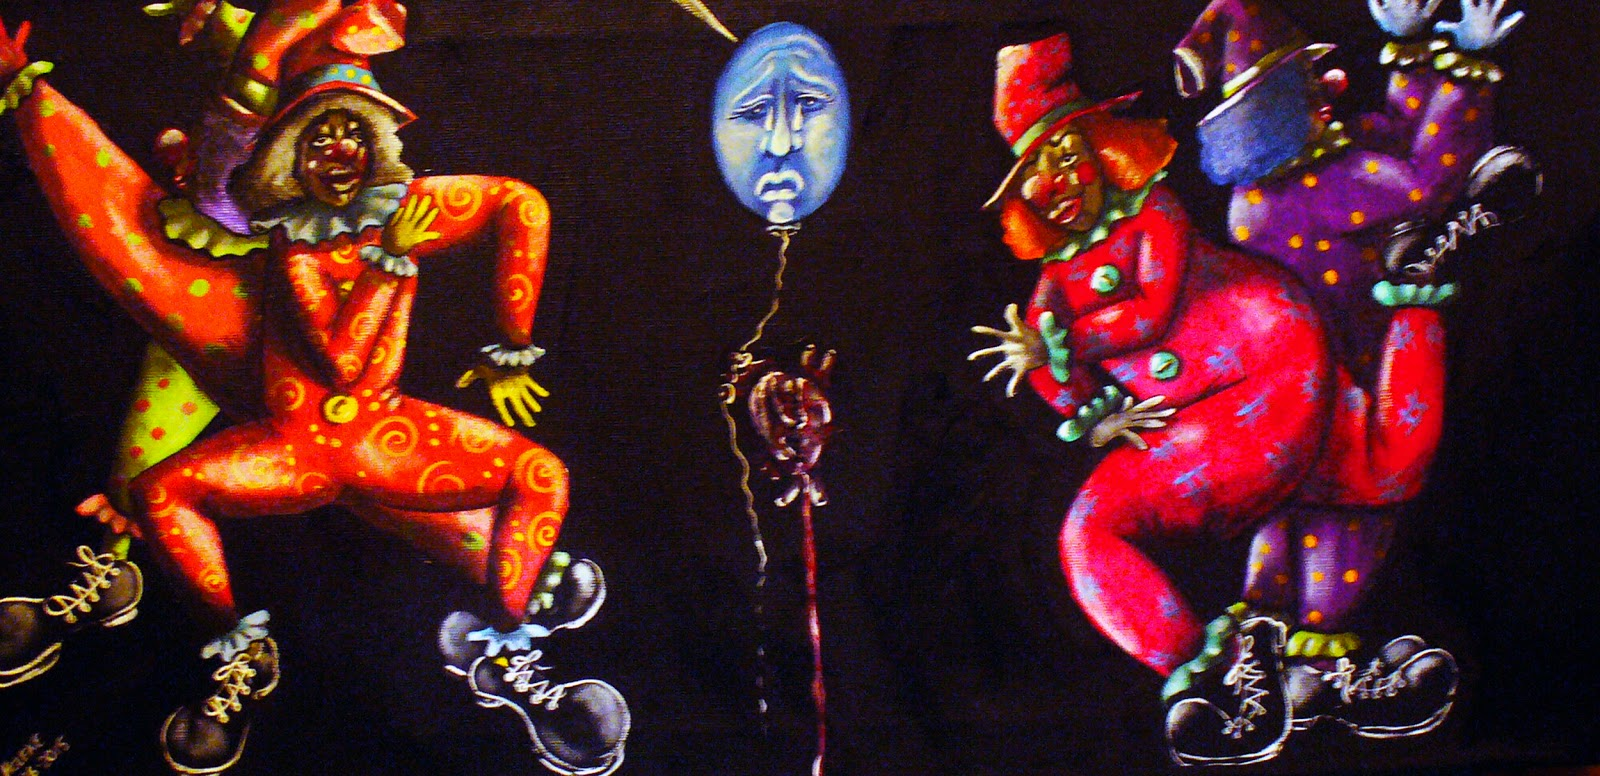 Acrylic painting on black background with two clowns dancing around sad face balloon with heart hanging in center